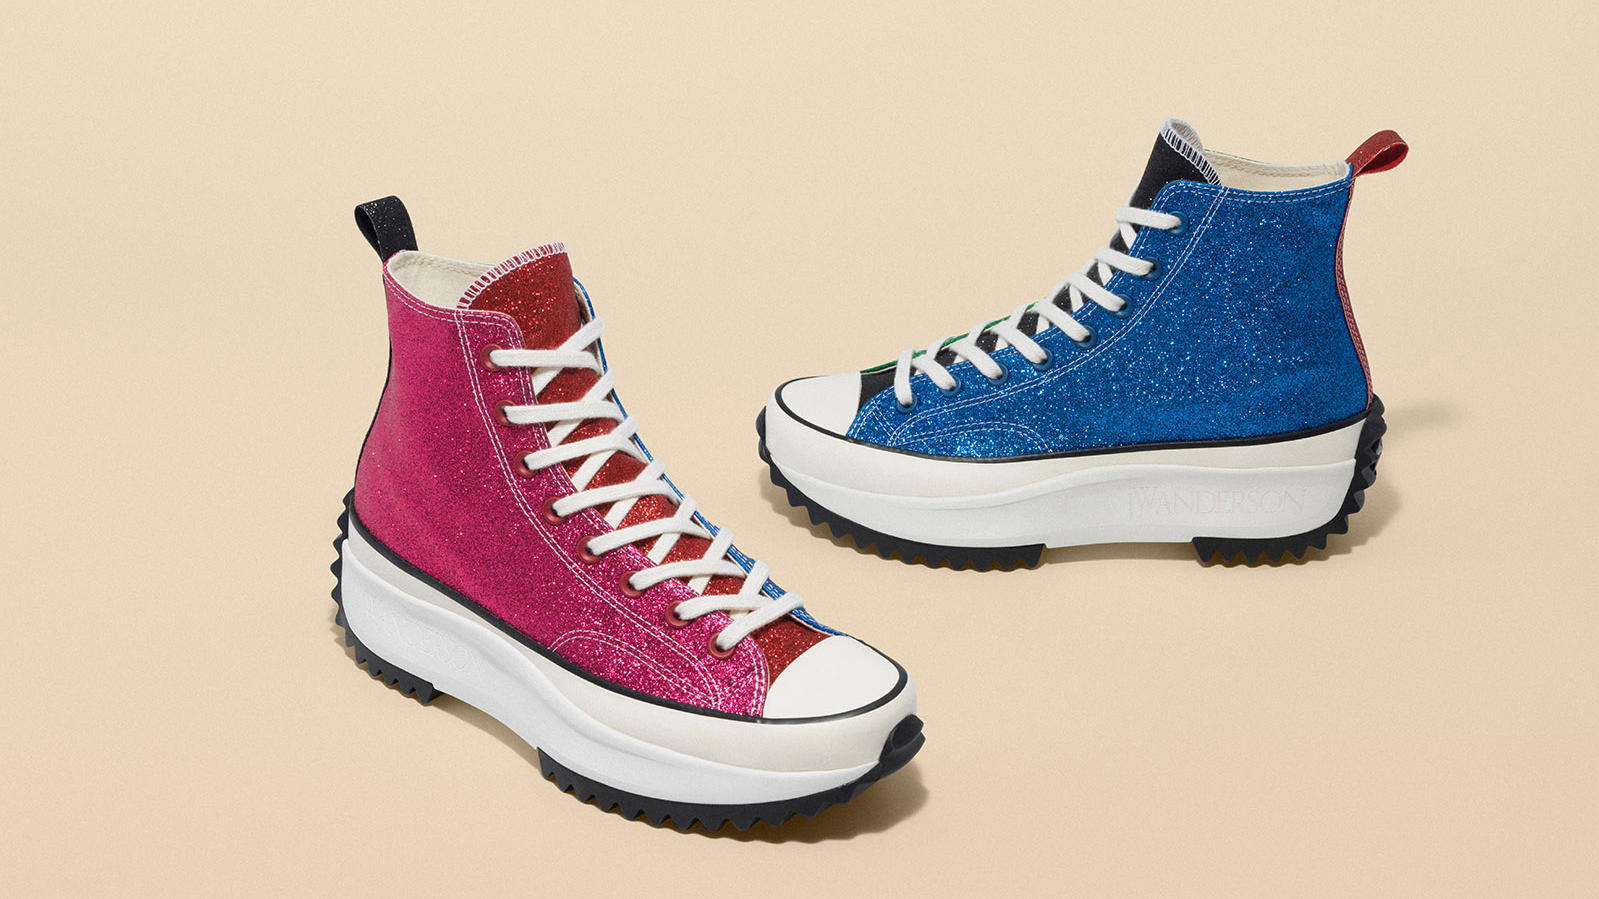 converse-x-jw-anderson-glitter-run-star-hike-4_original (1) copy